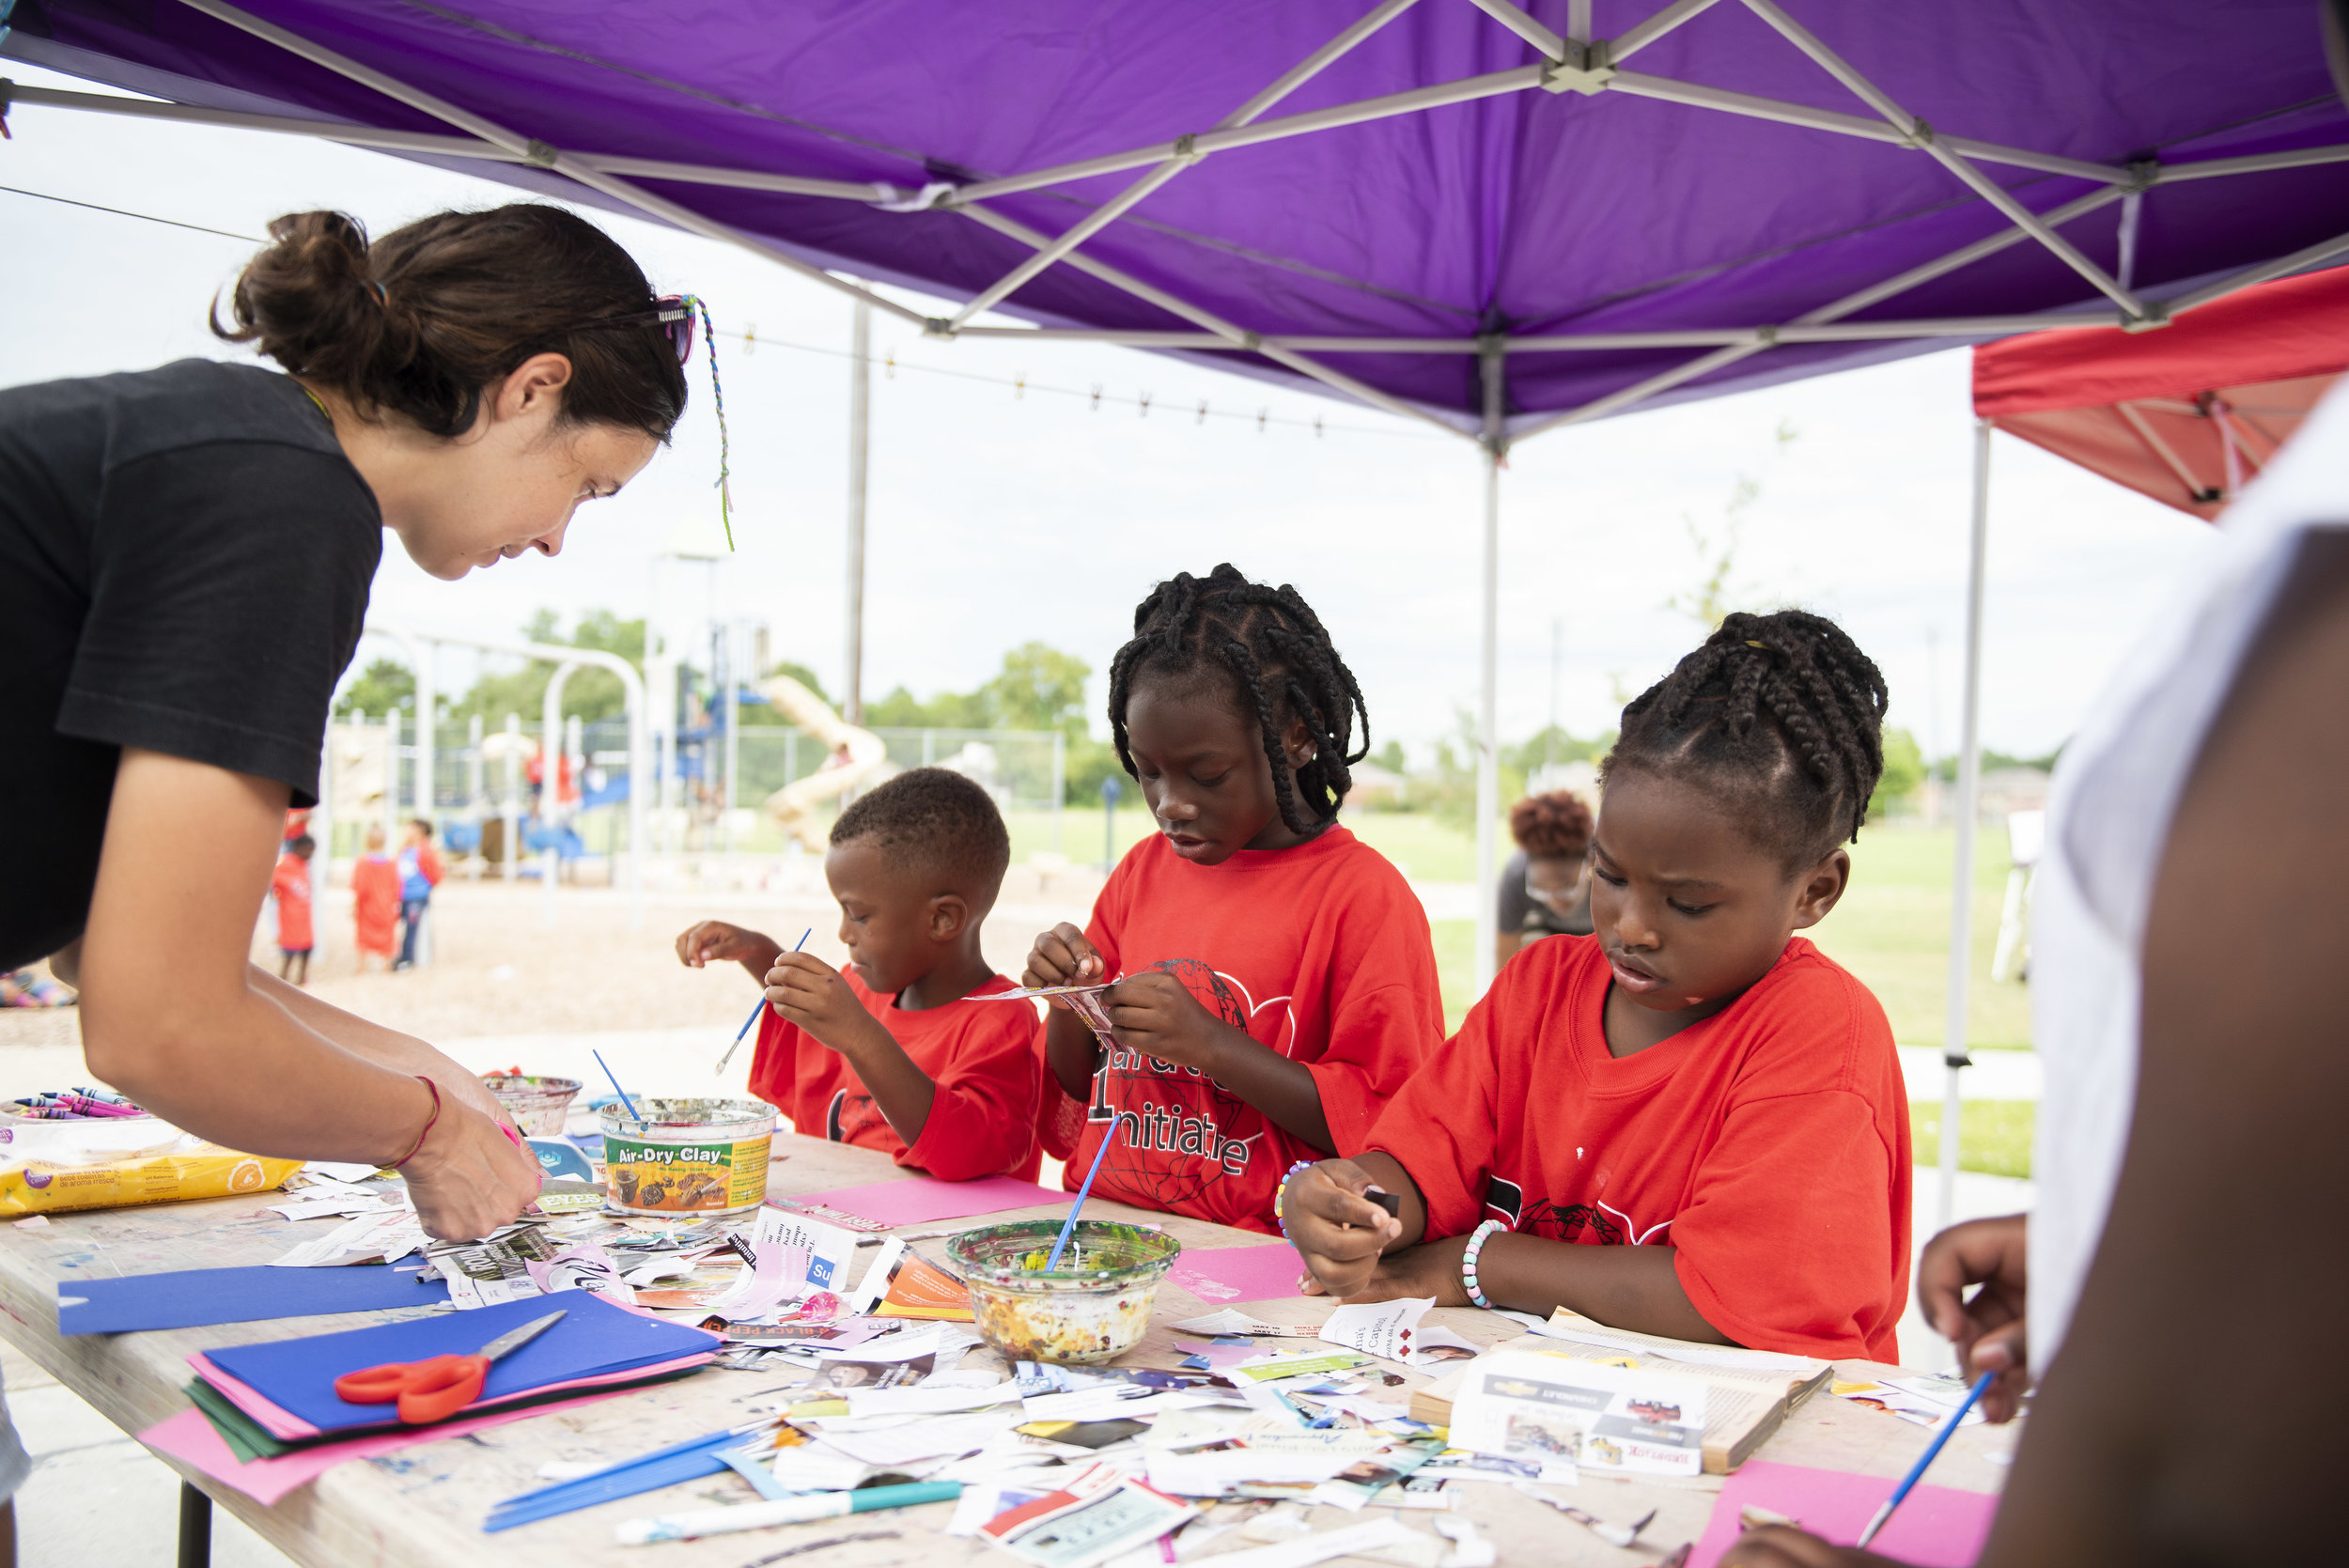 NAP assistant, Samantha Combs, helps kids with art activities.